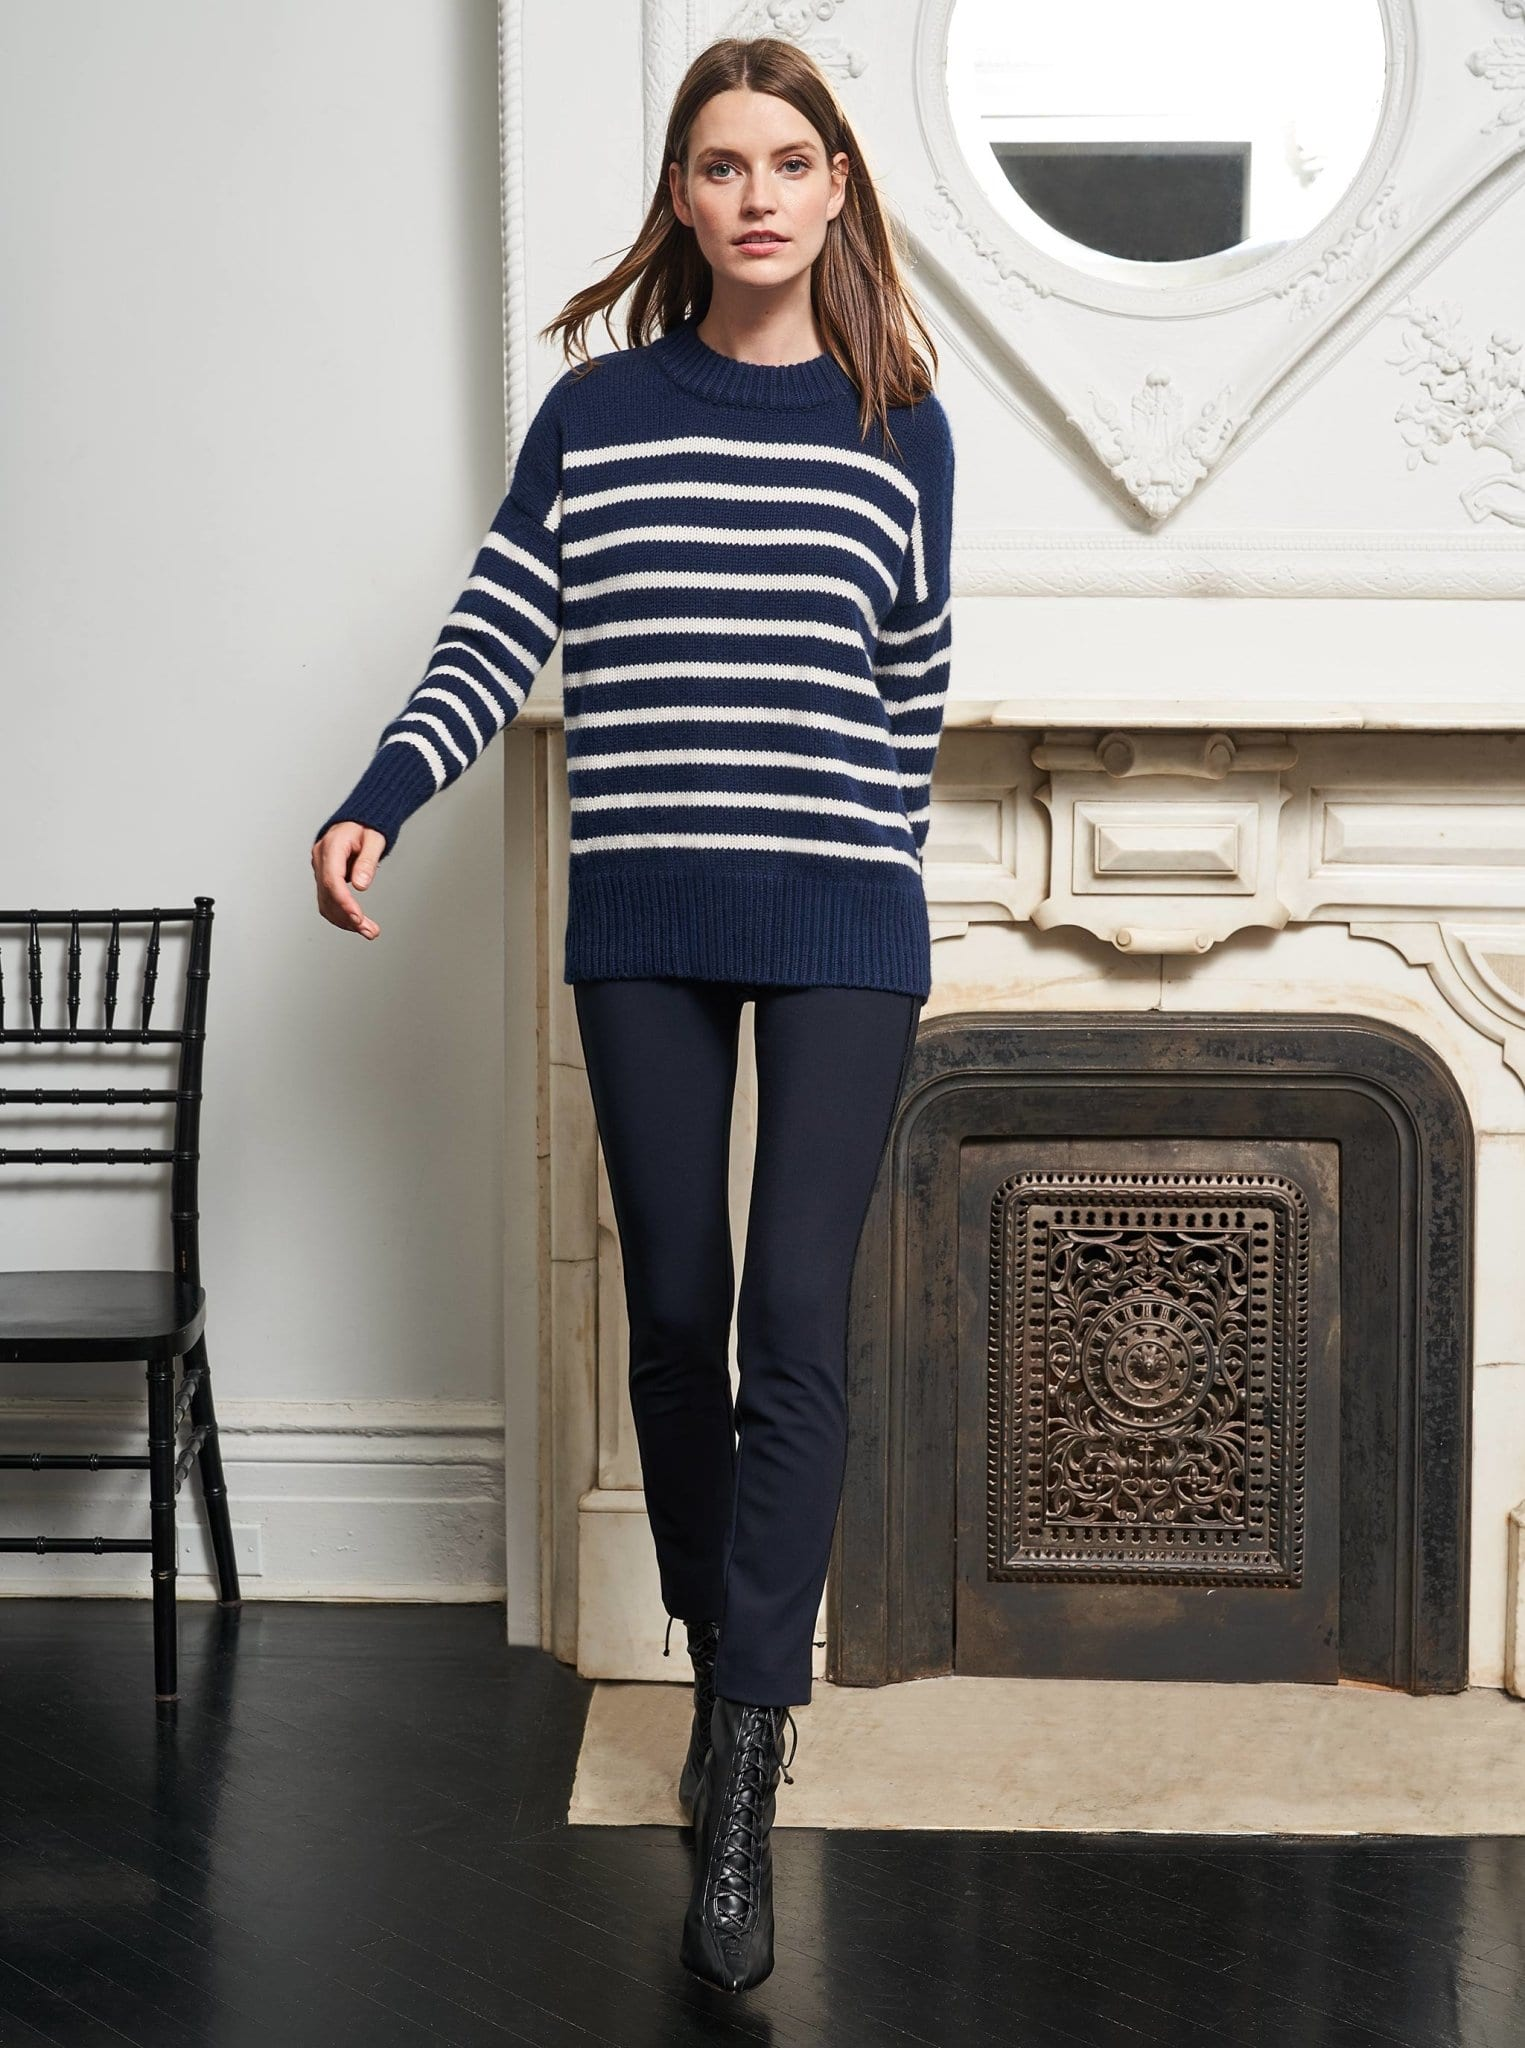 La Ligne Marin Sweater / Neighborhood Goods